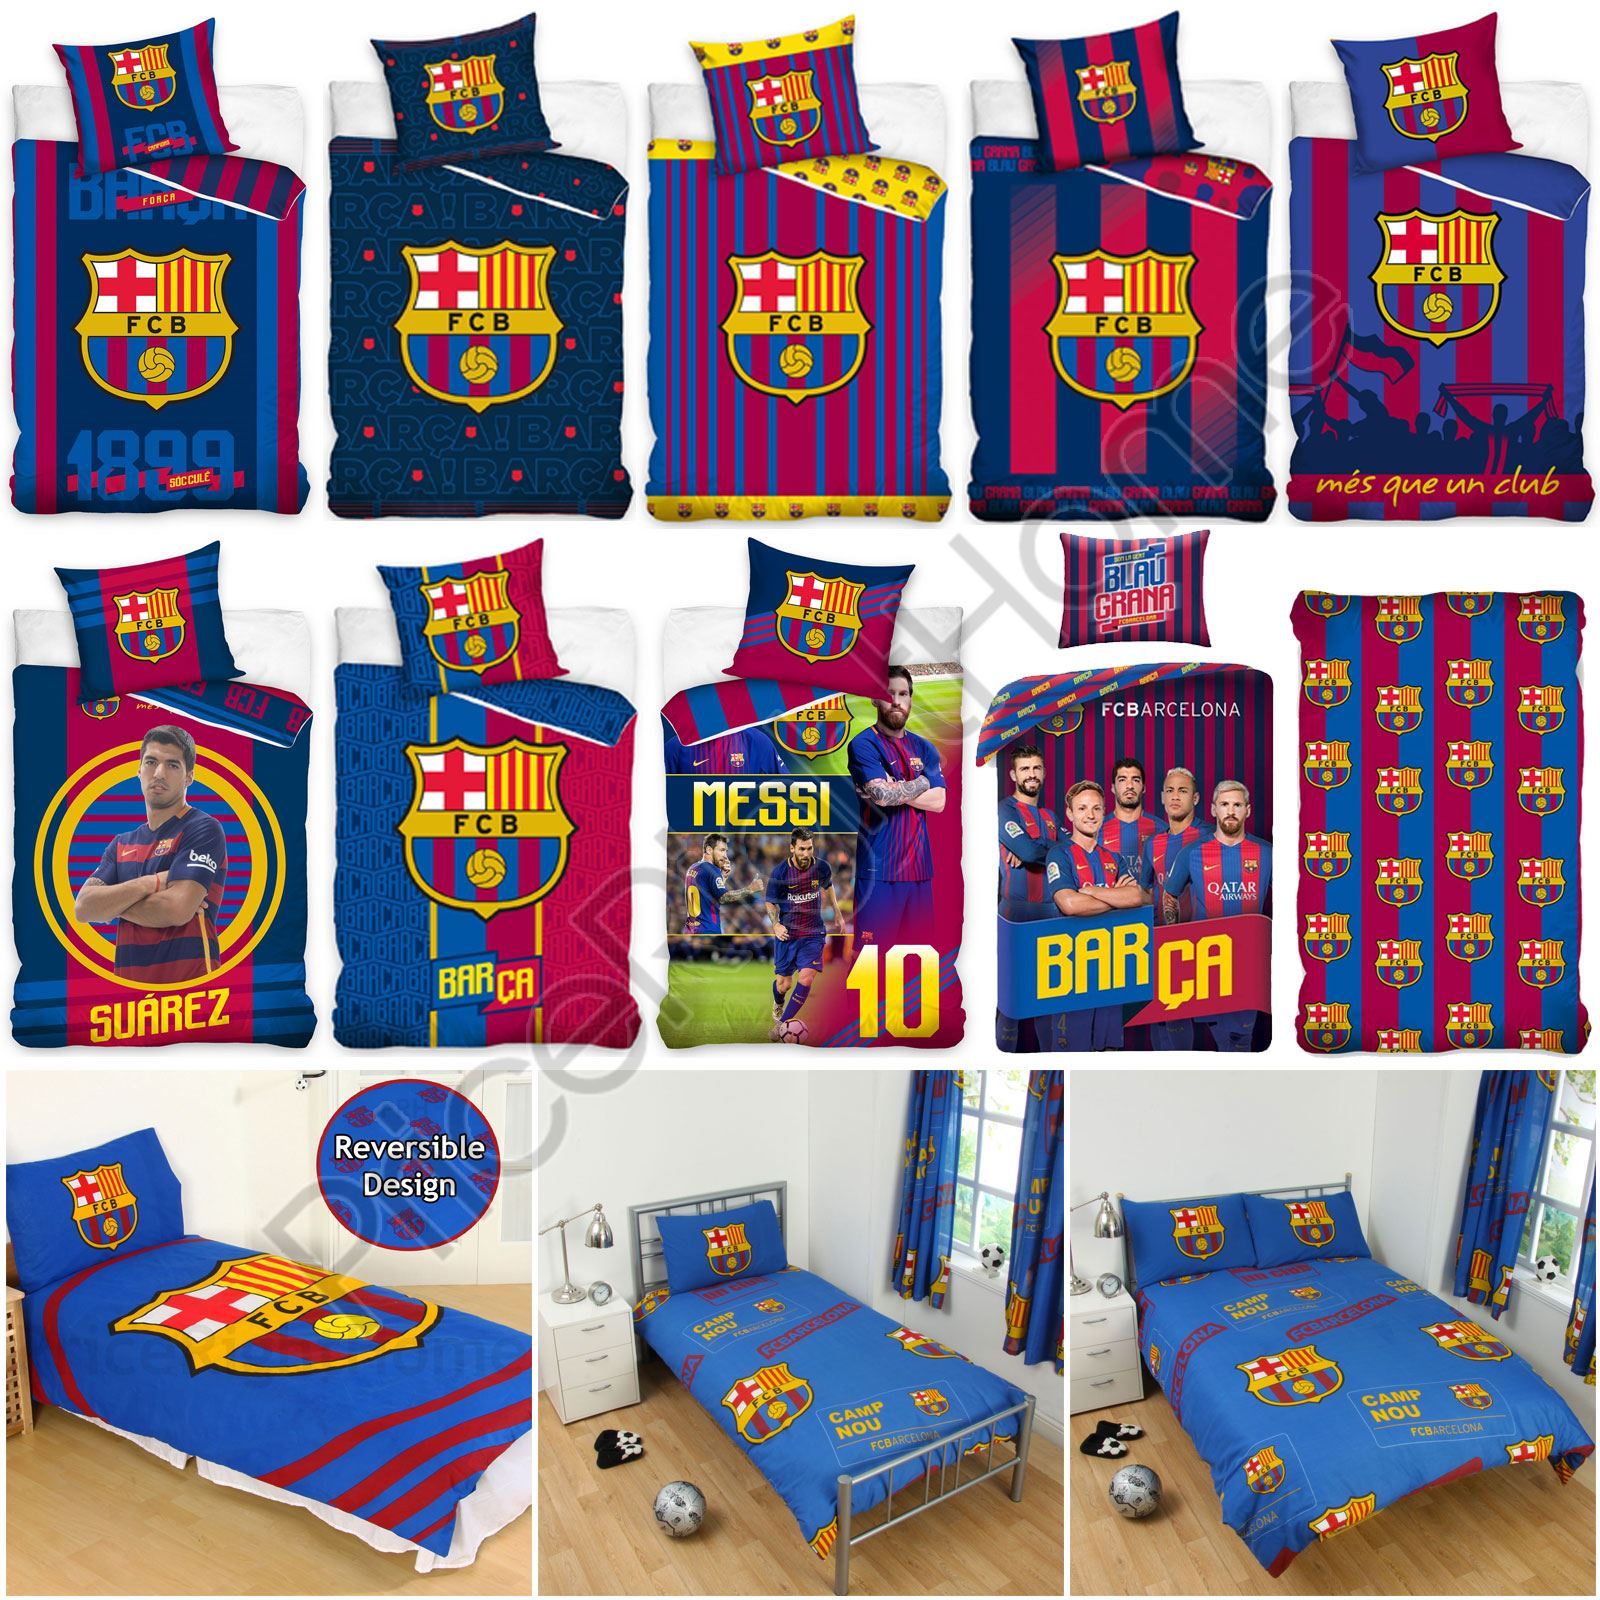 9240a4291123e2 Details about OFFICIAL FC BARCELONA DUVET COVER SETS BEDDING BEDROOM  FOOTBALL NEW